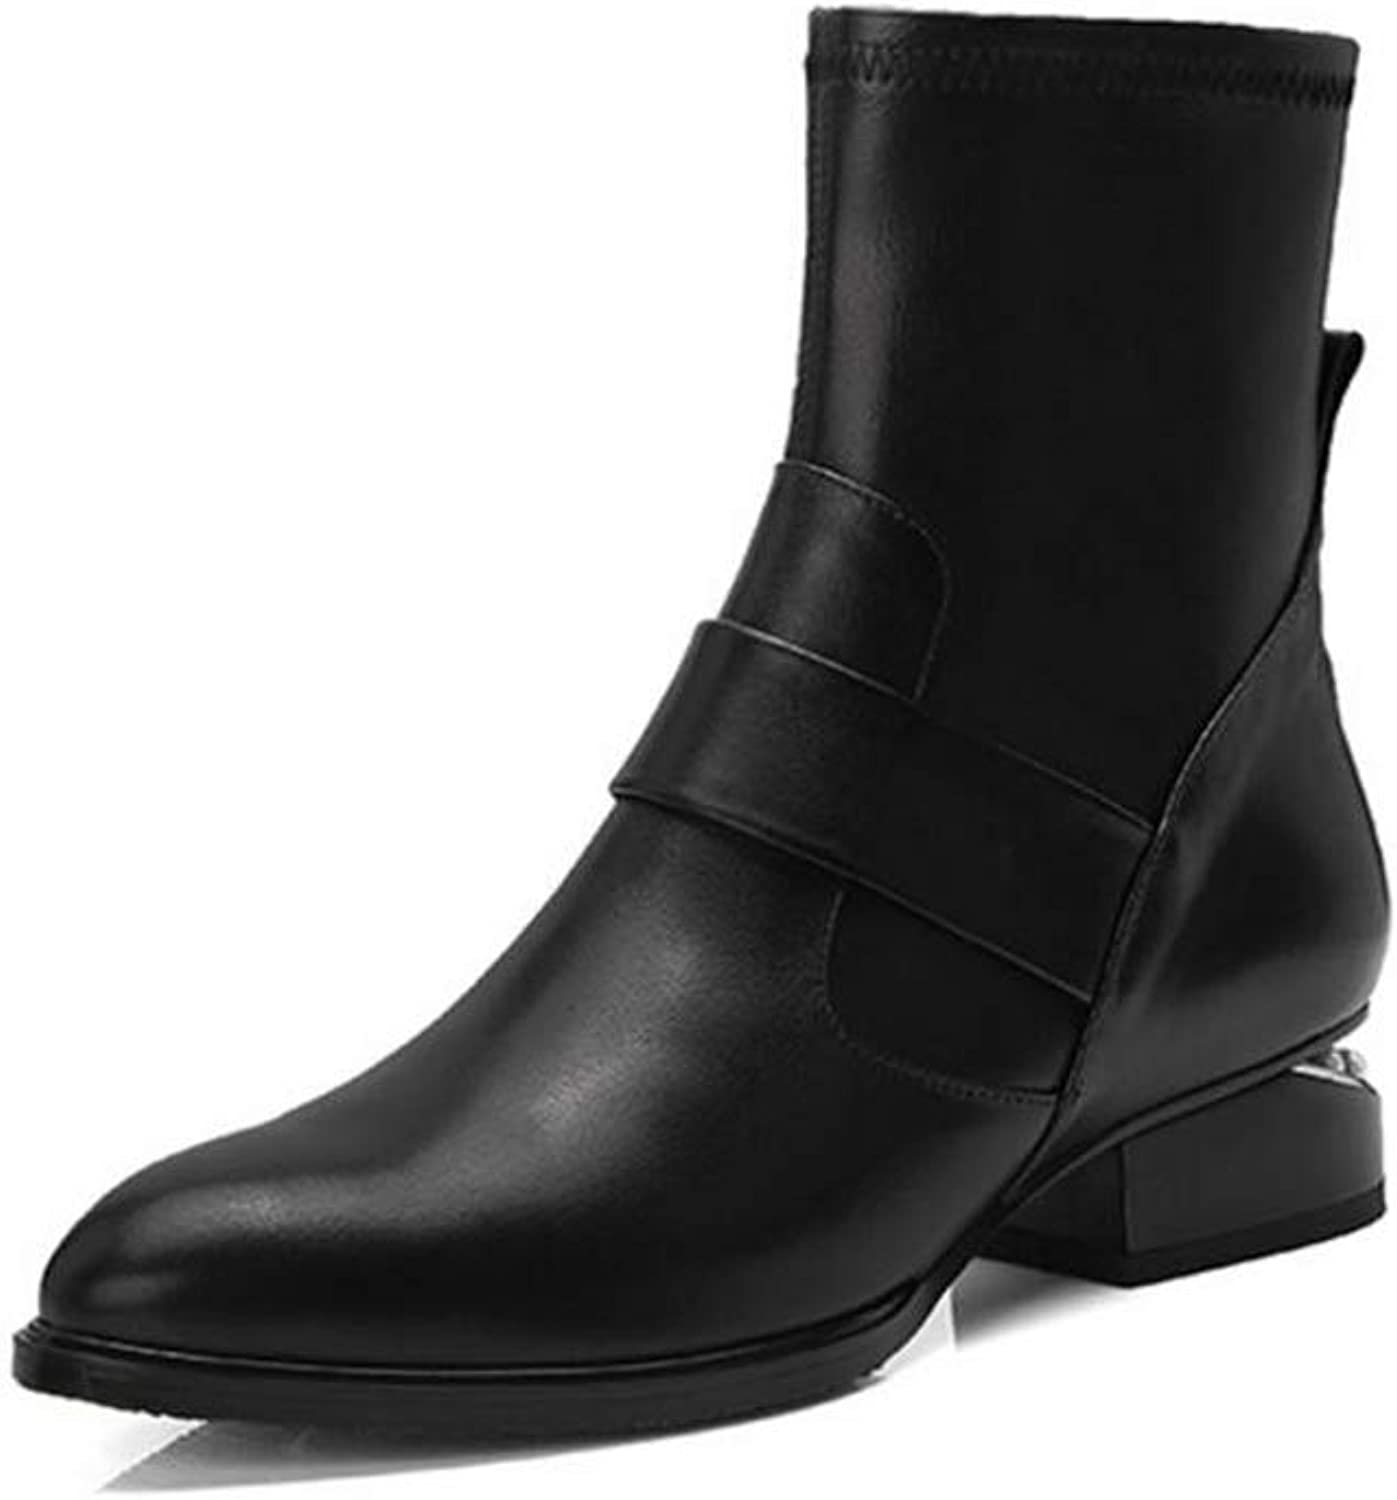 Women's Booties, Leather Chelsea Boots, Women Autumn Winter shoes, Black Ankle Boots Female Biker Boots Fall Booties Popular Footwear (color   Black, Size   36)